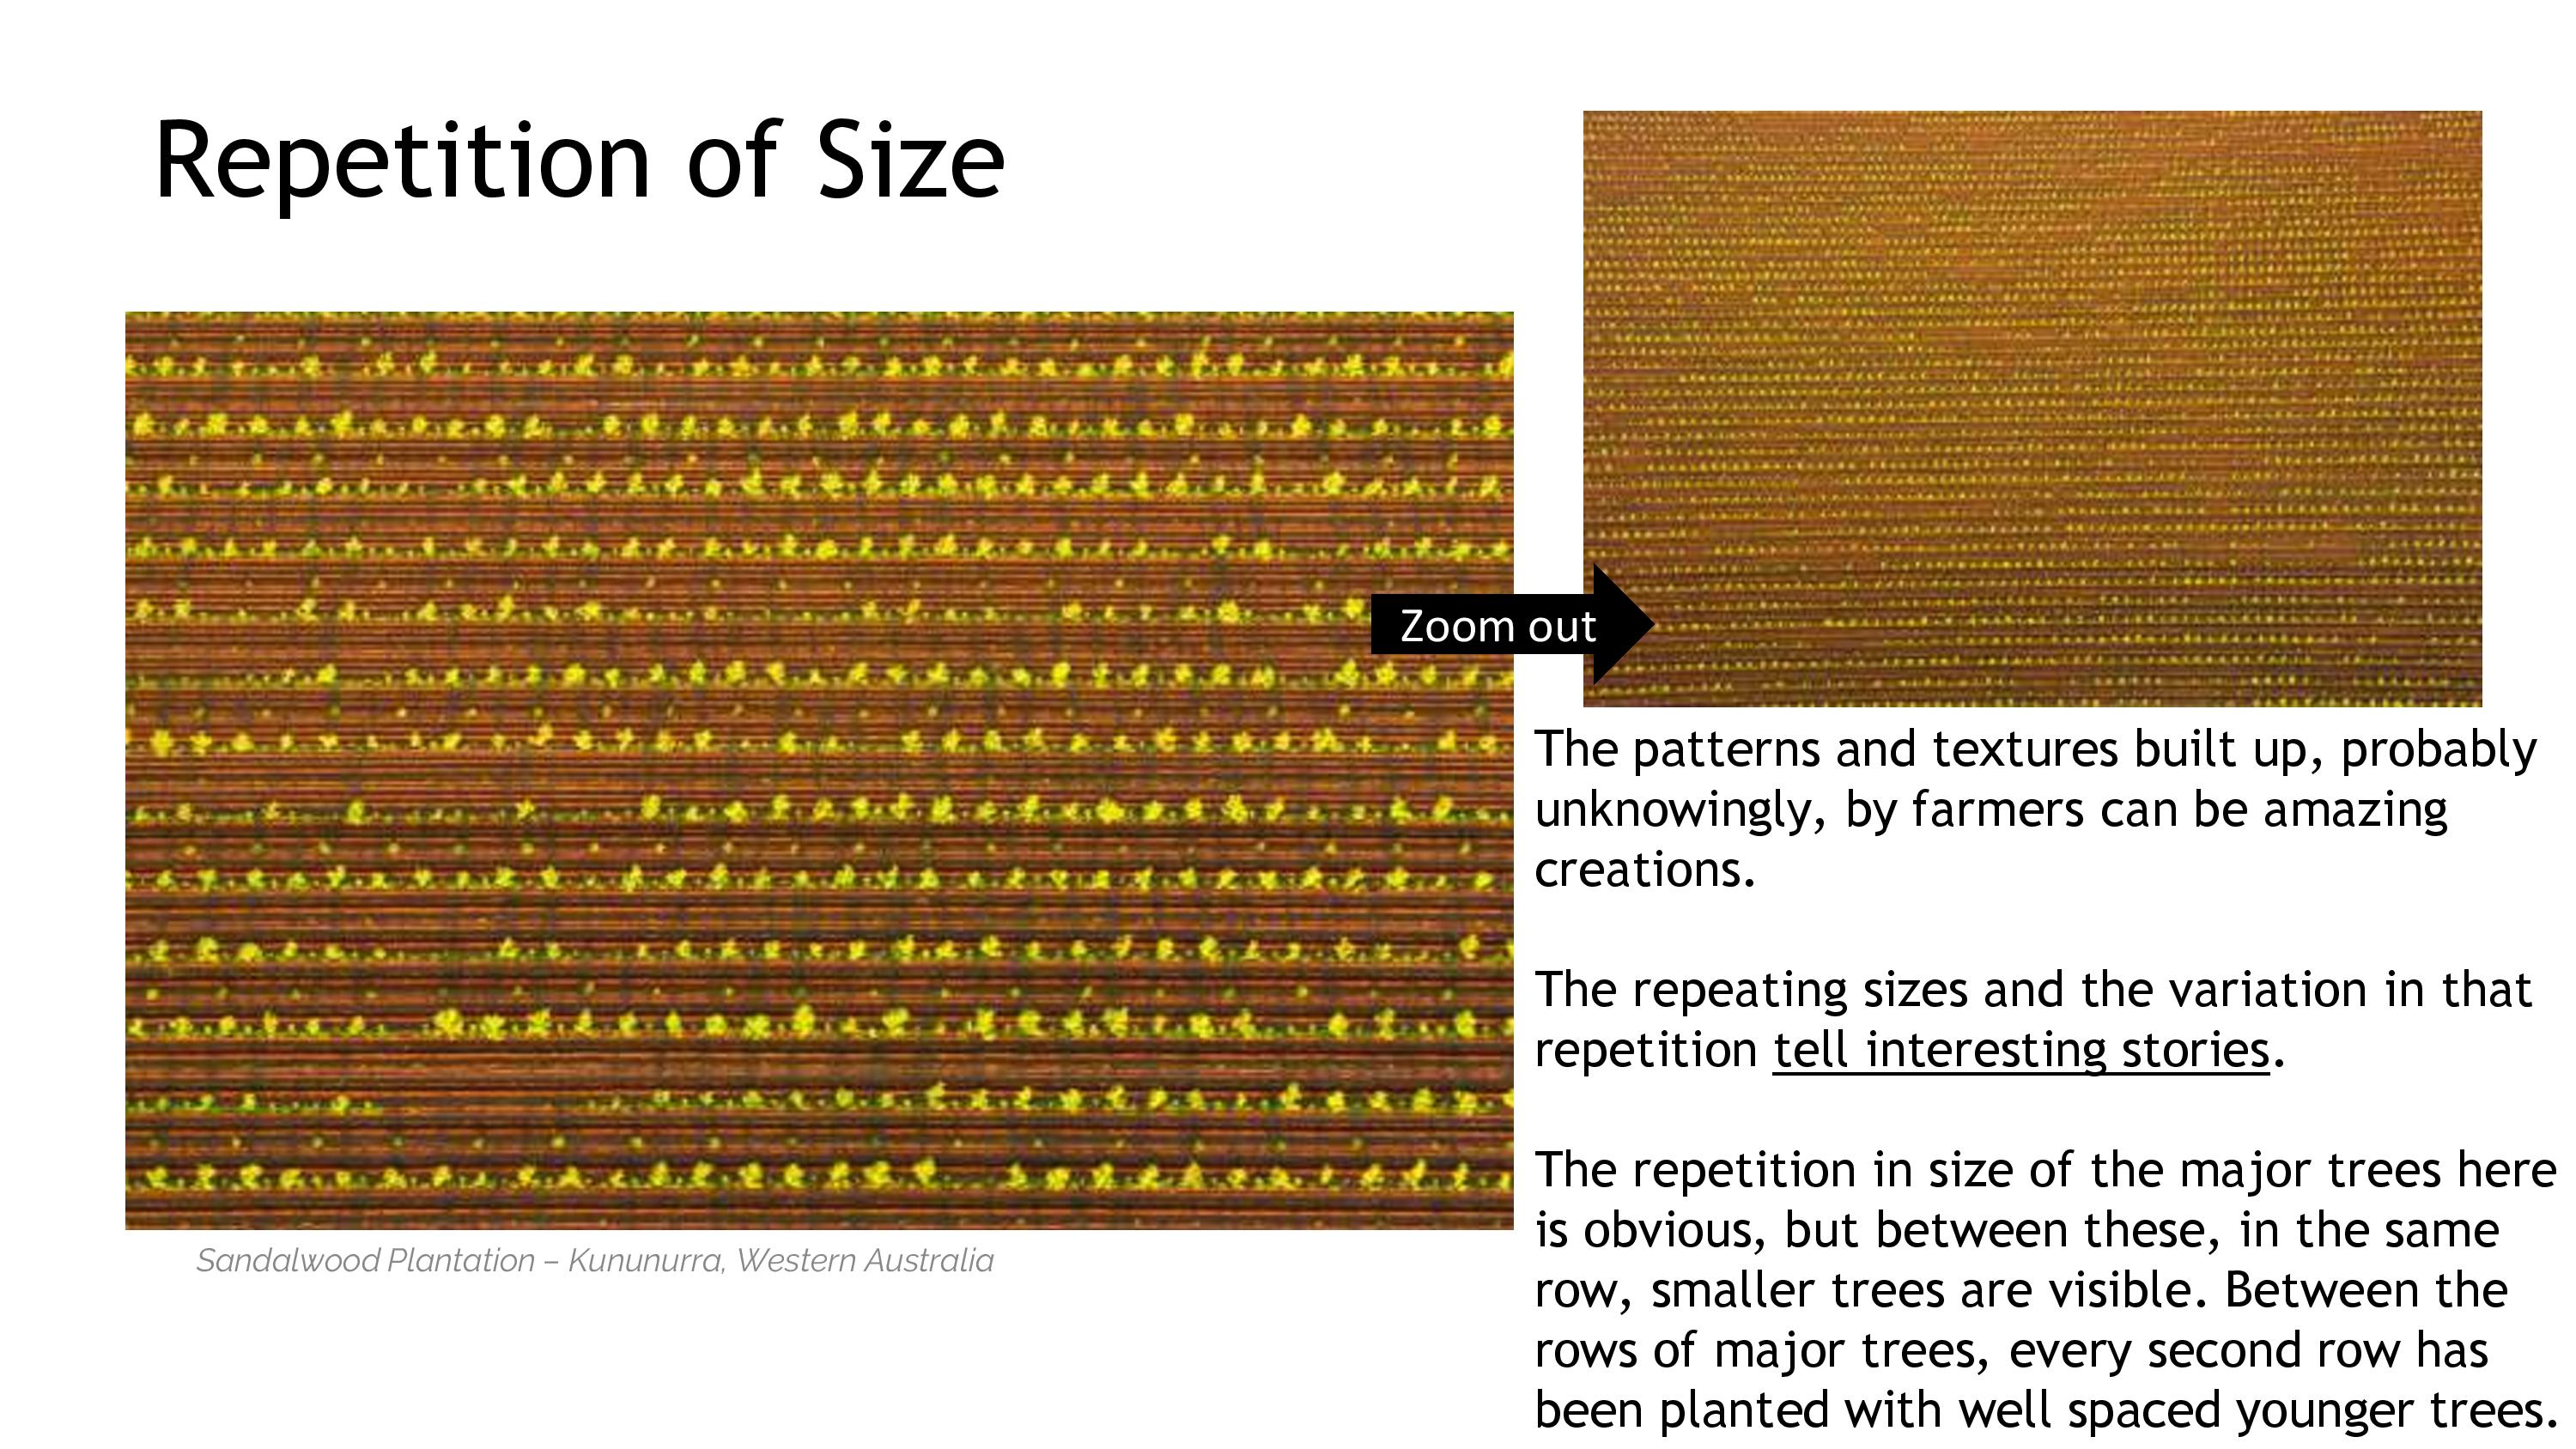 harmony-pattern-size-scale-proportion-page-023